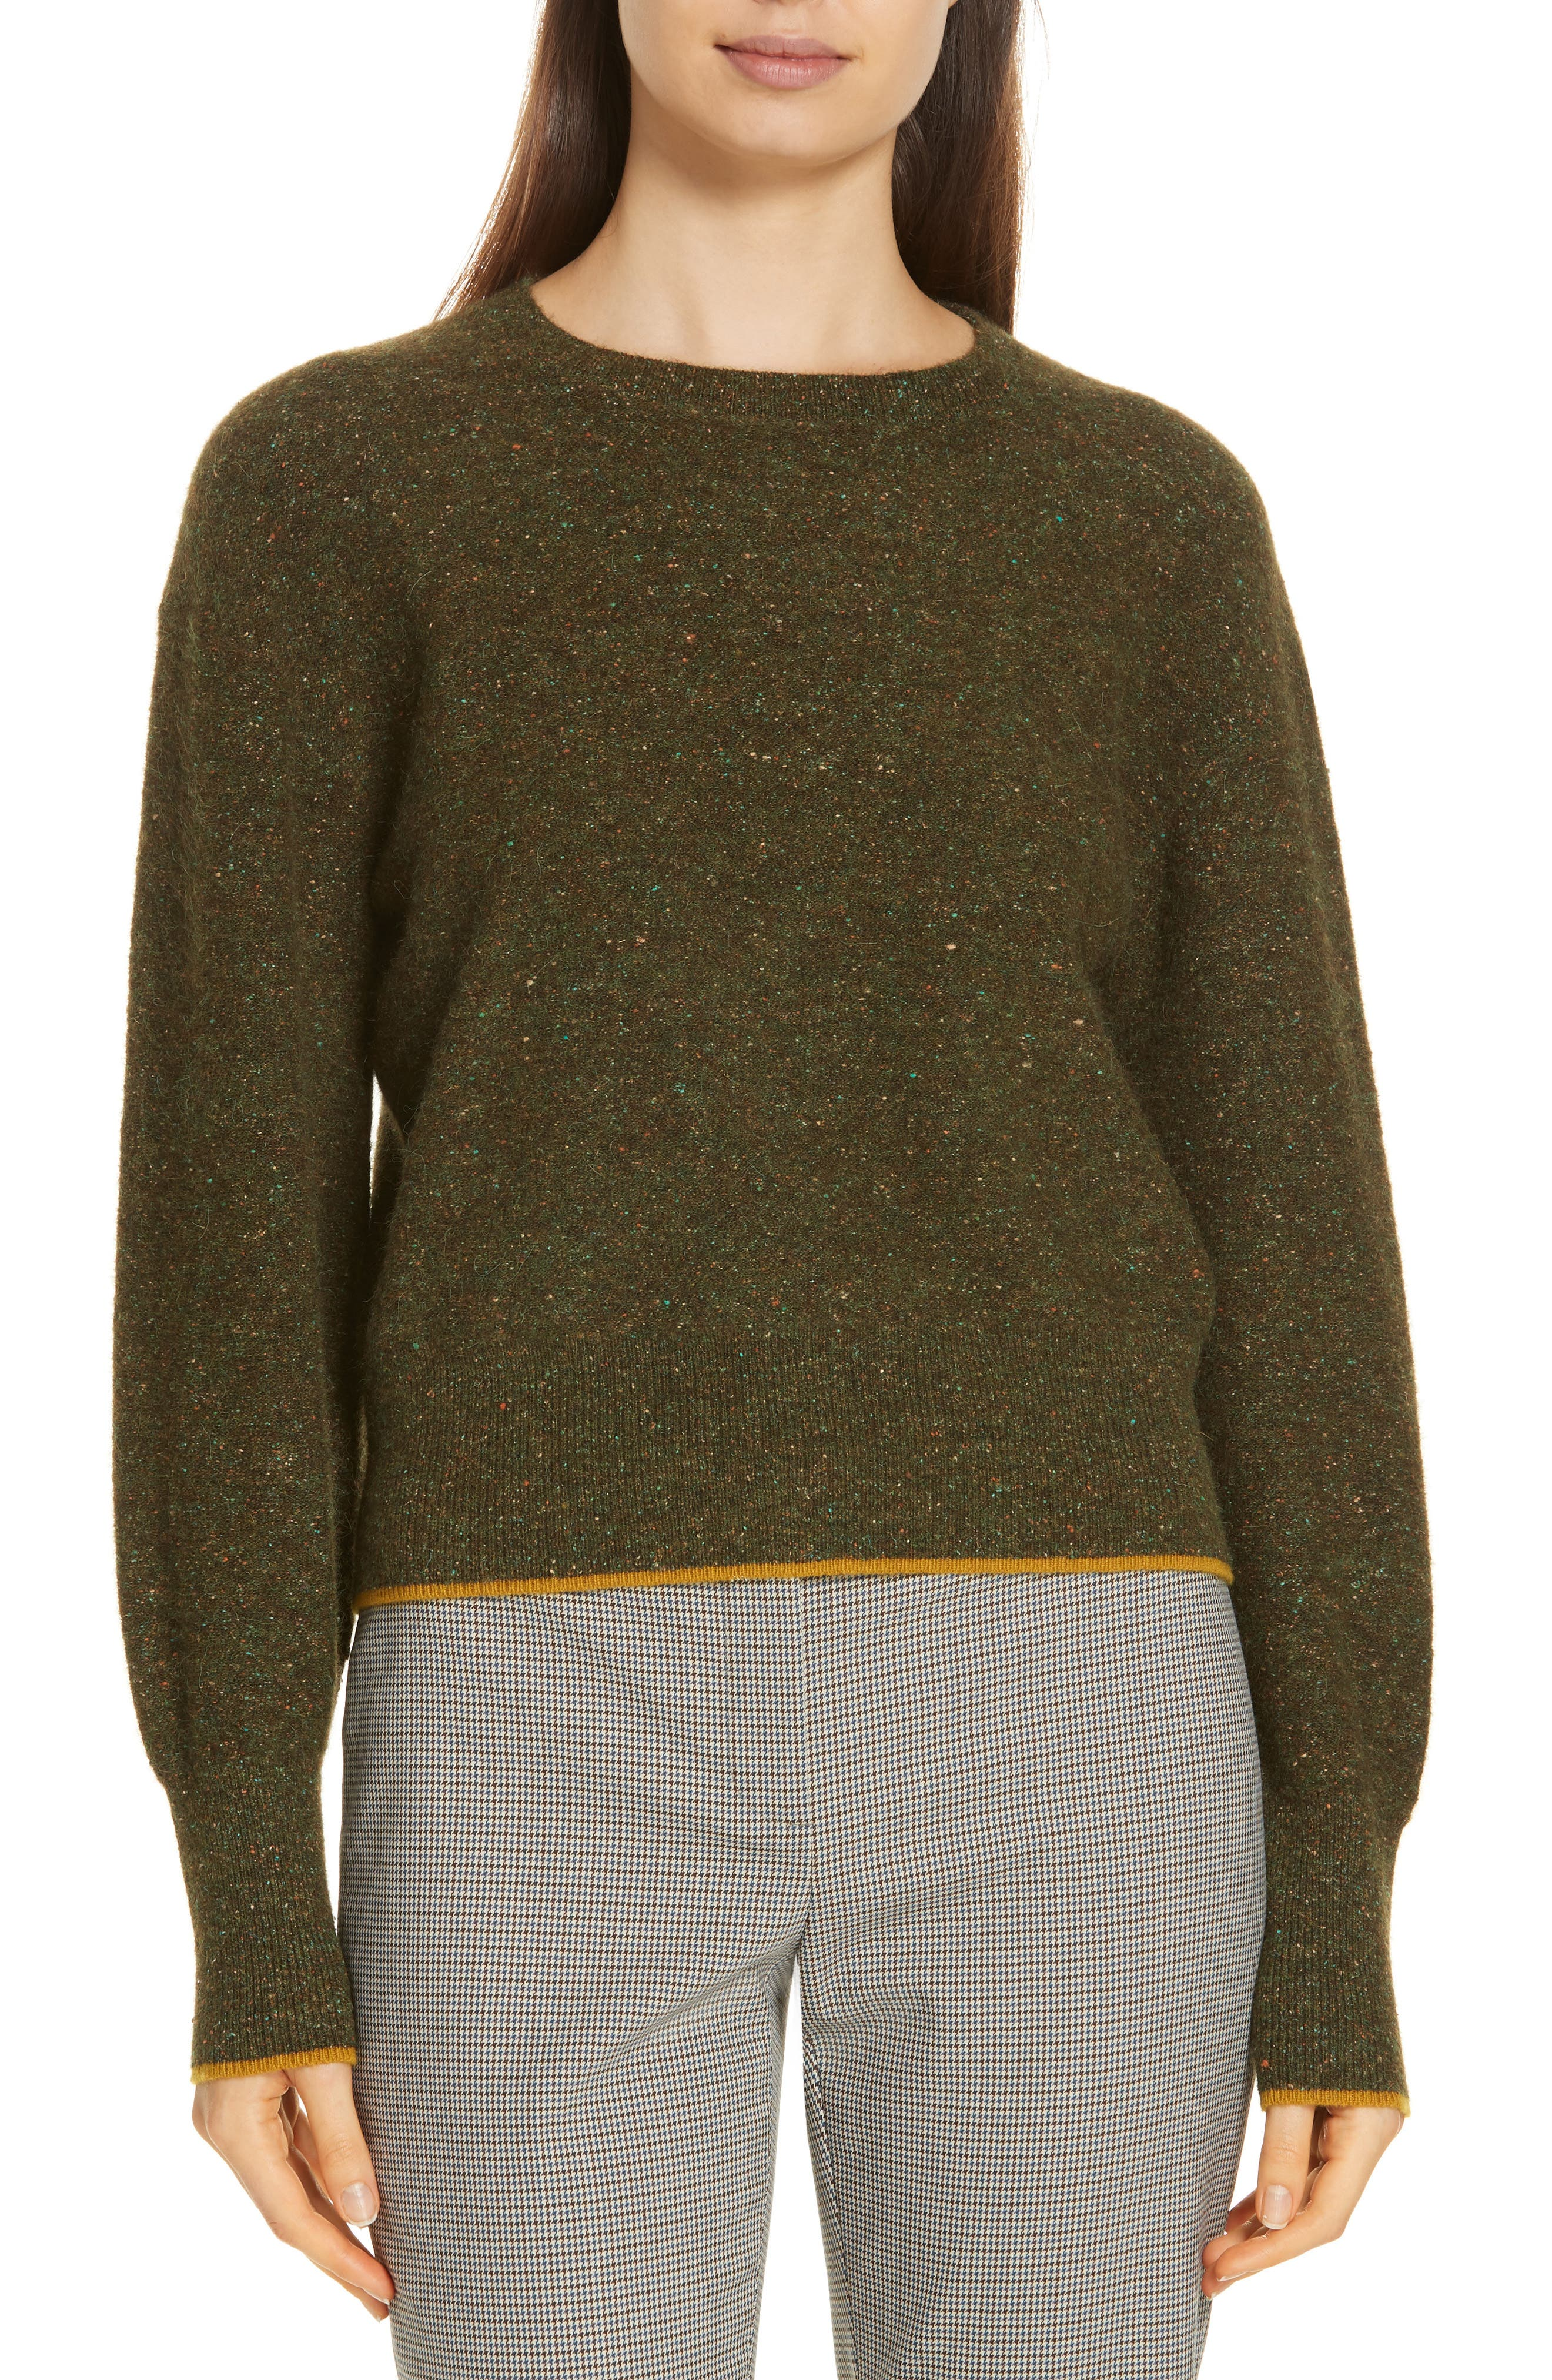 Tweed Knit Sweater,                             Main thumbnail 1, color,                             310